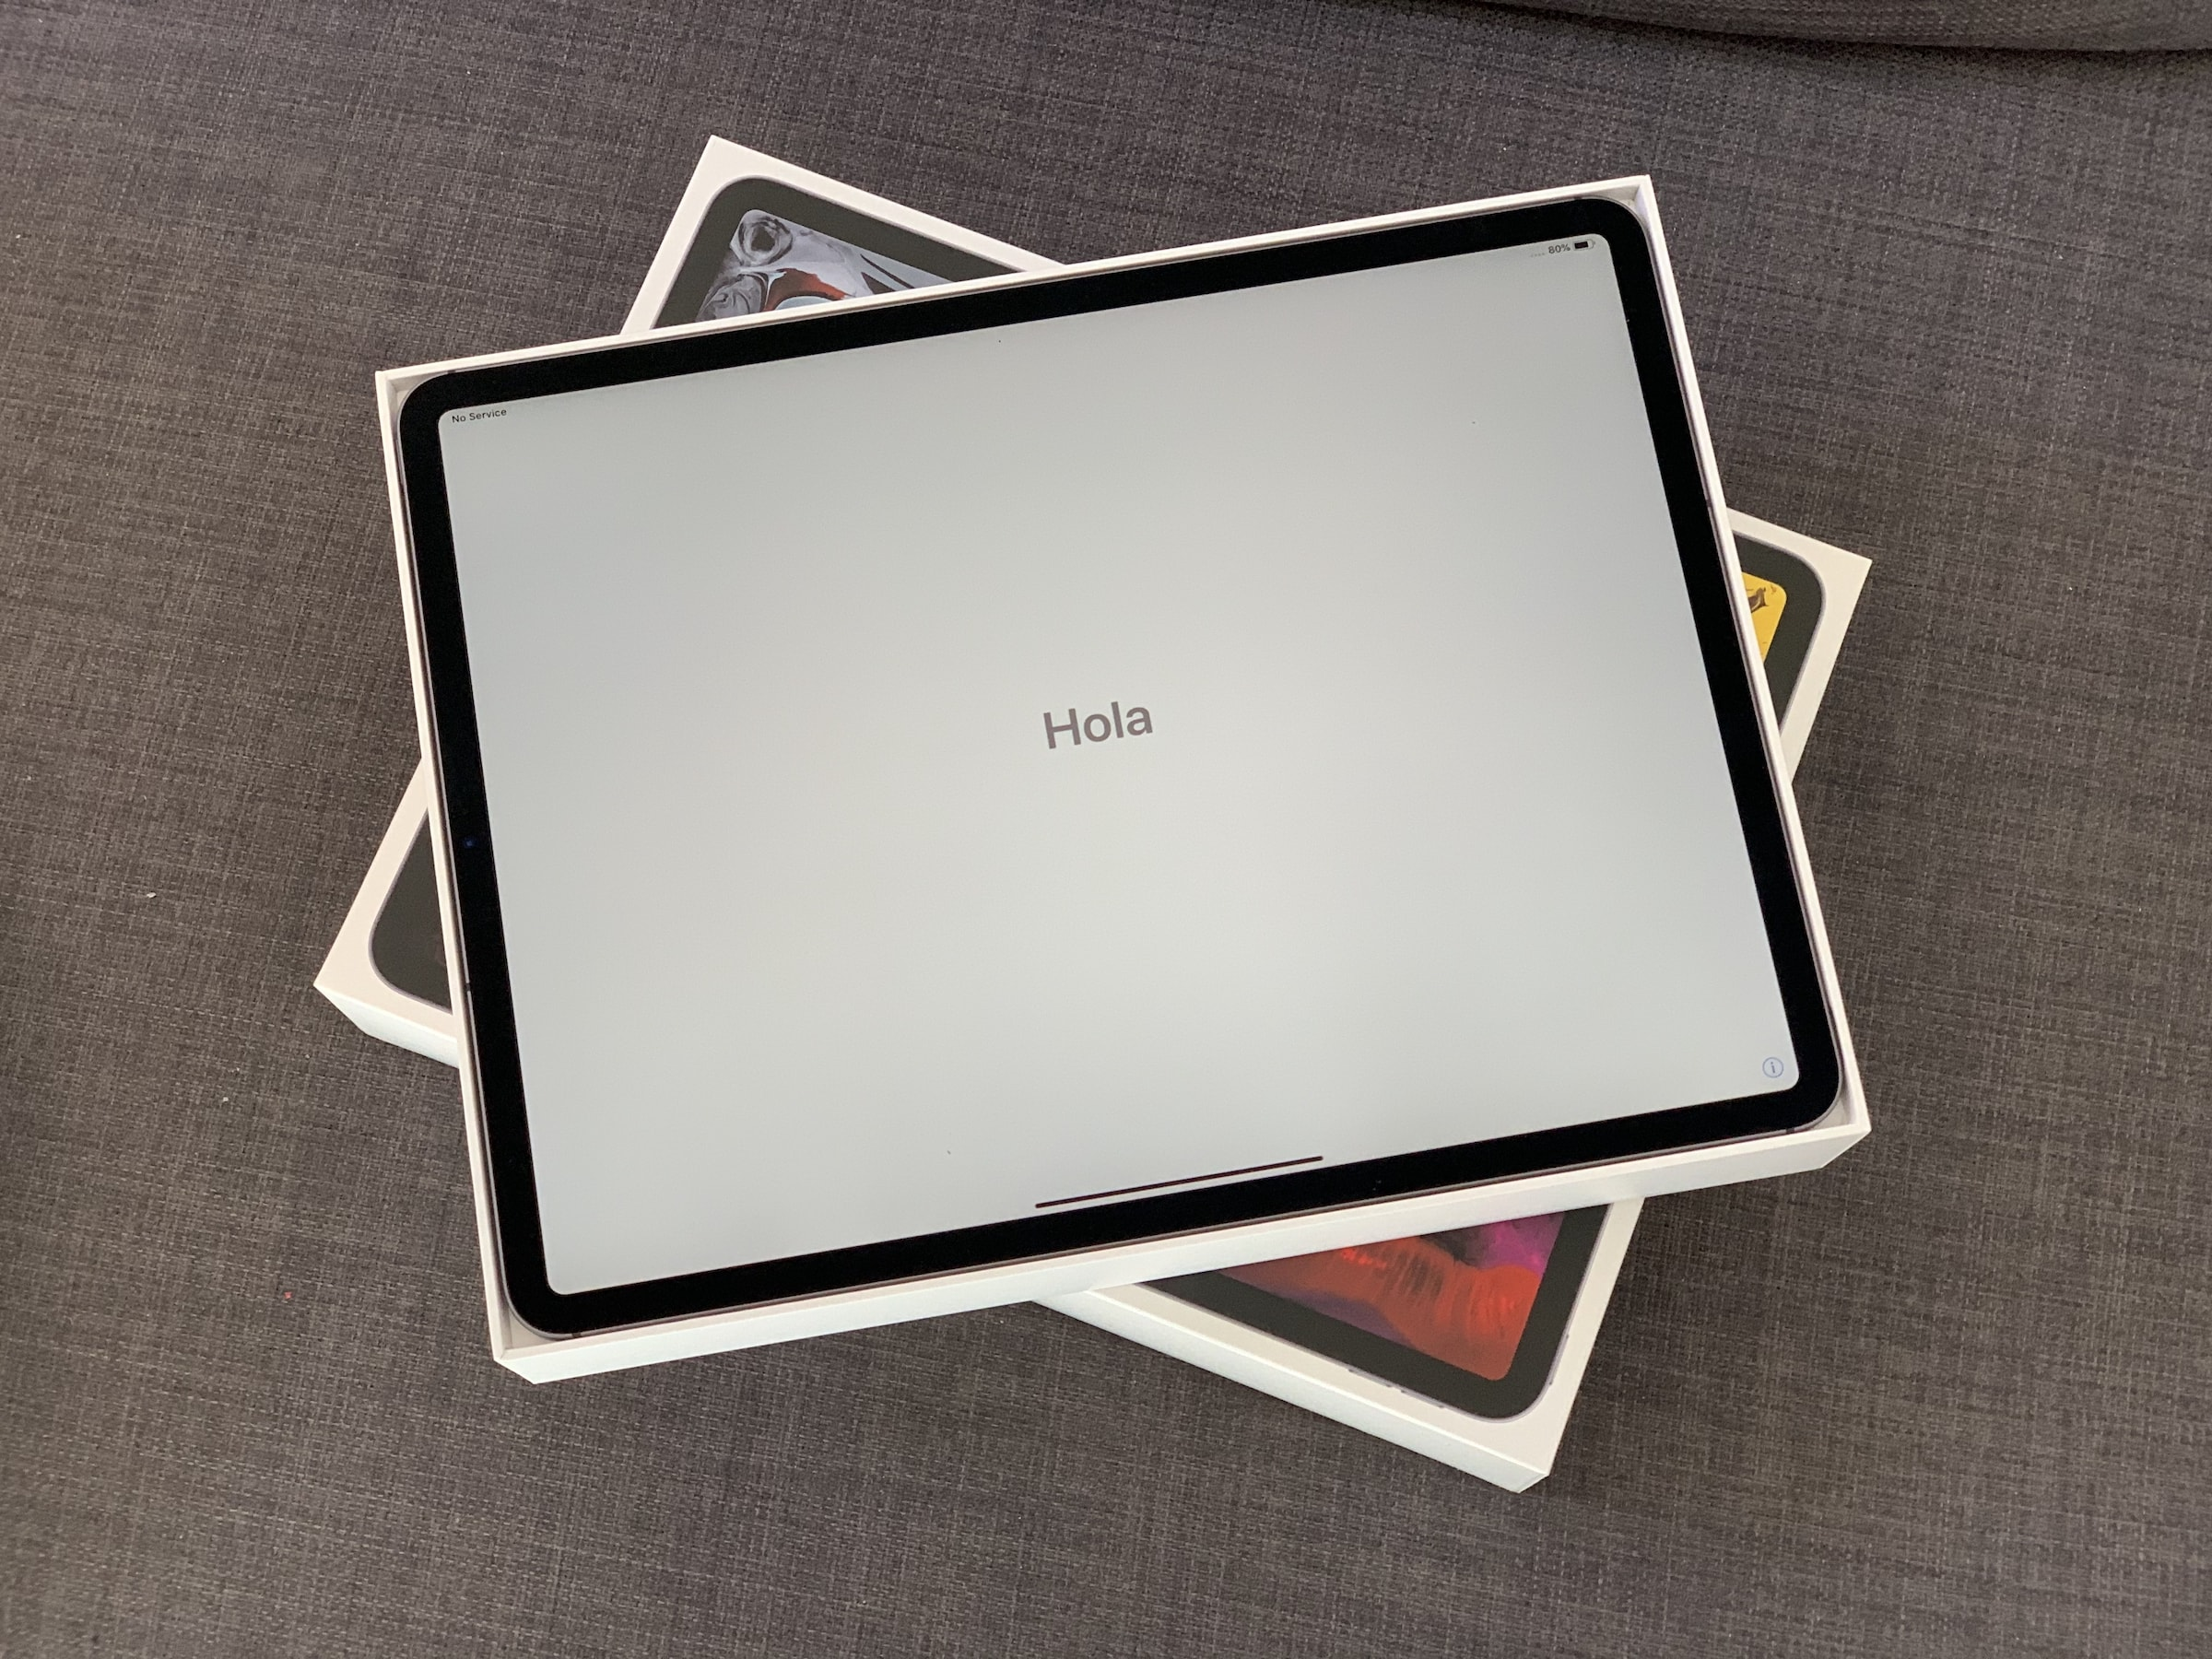 How To Set Up Your New Ipad Pro 2018 The Right Way Cult Of Mac